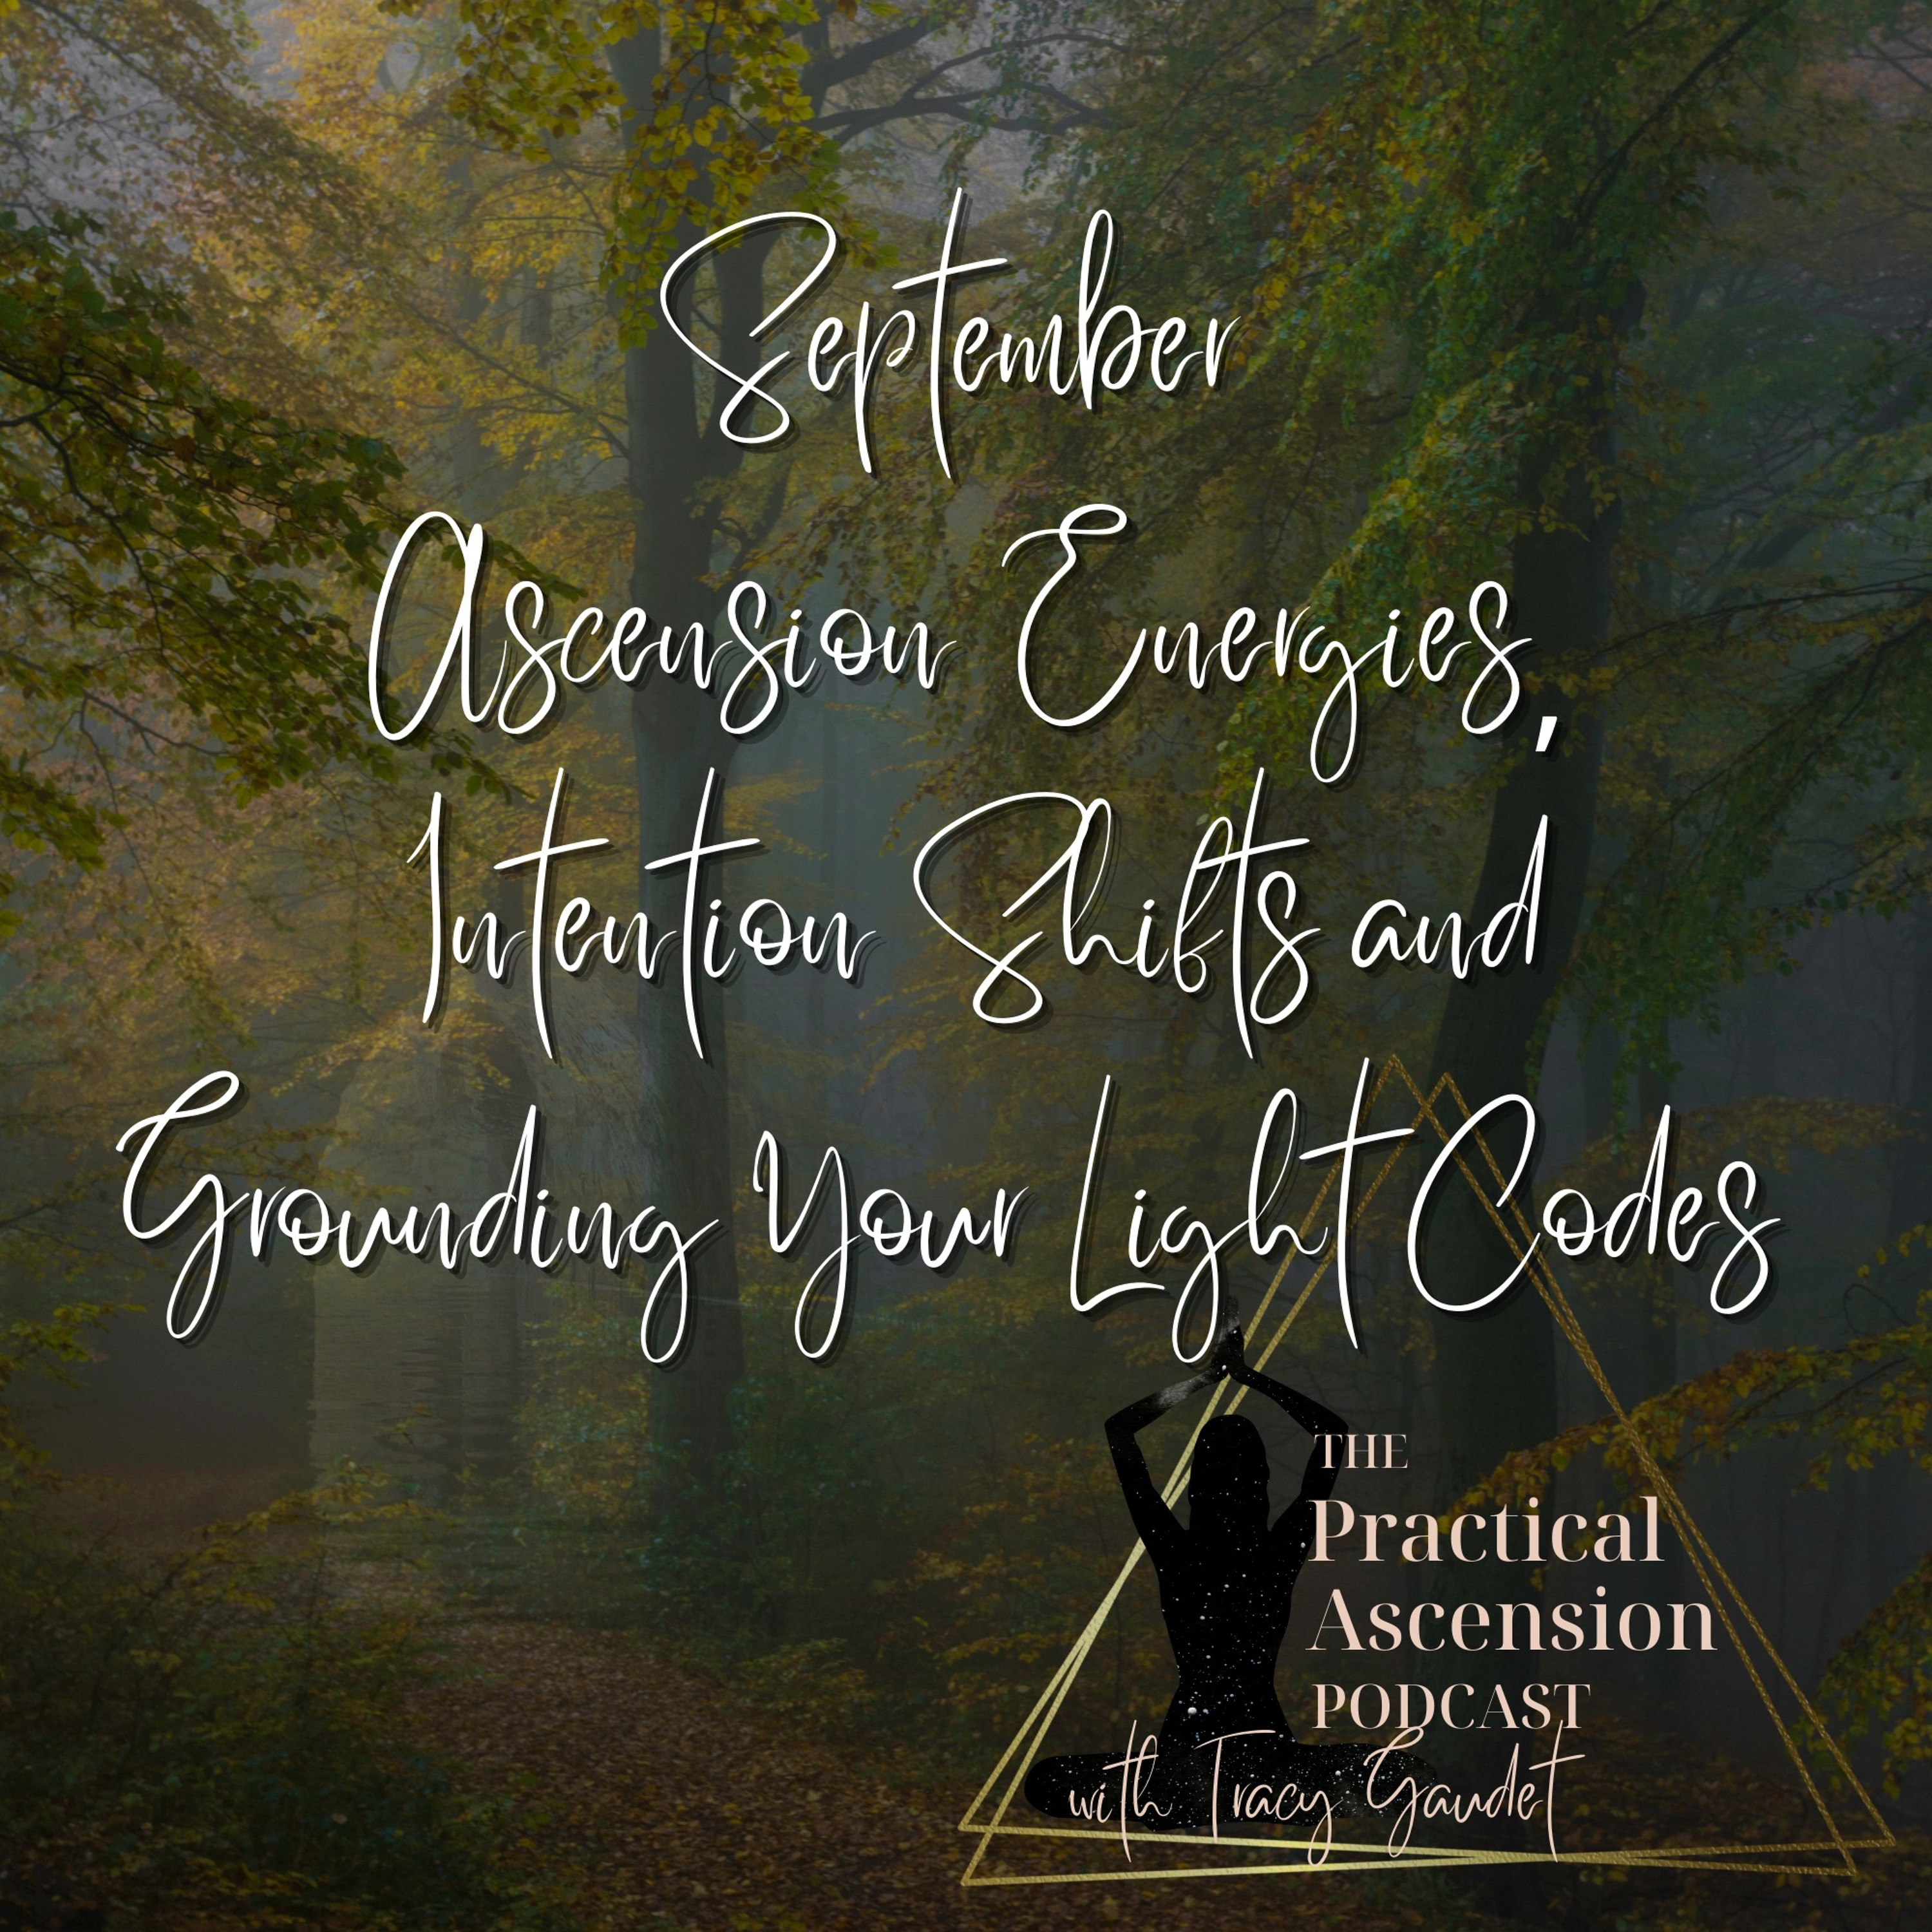 September 2021 Ascension Energies, Intention Shifts and Grounding Your Light Codes